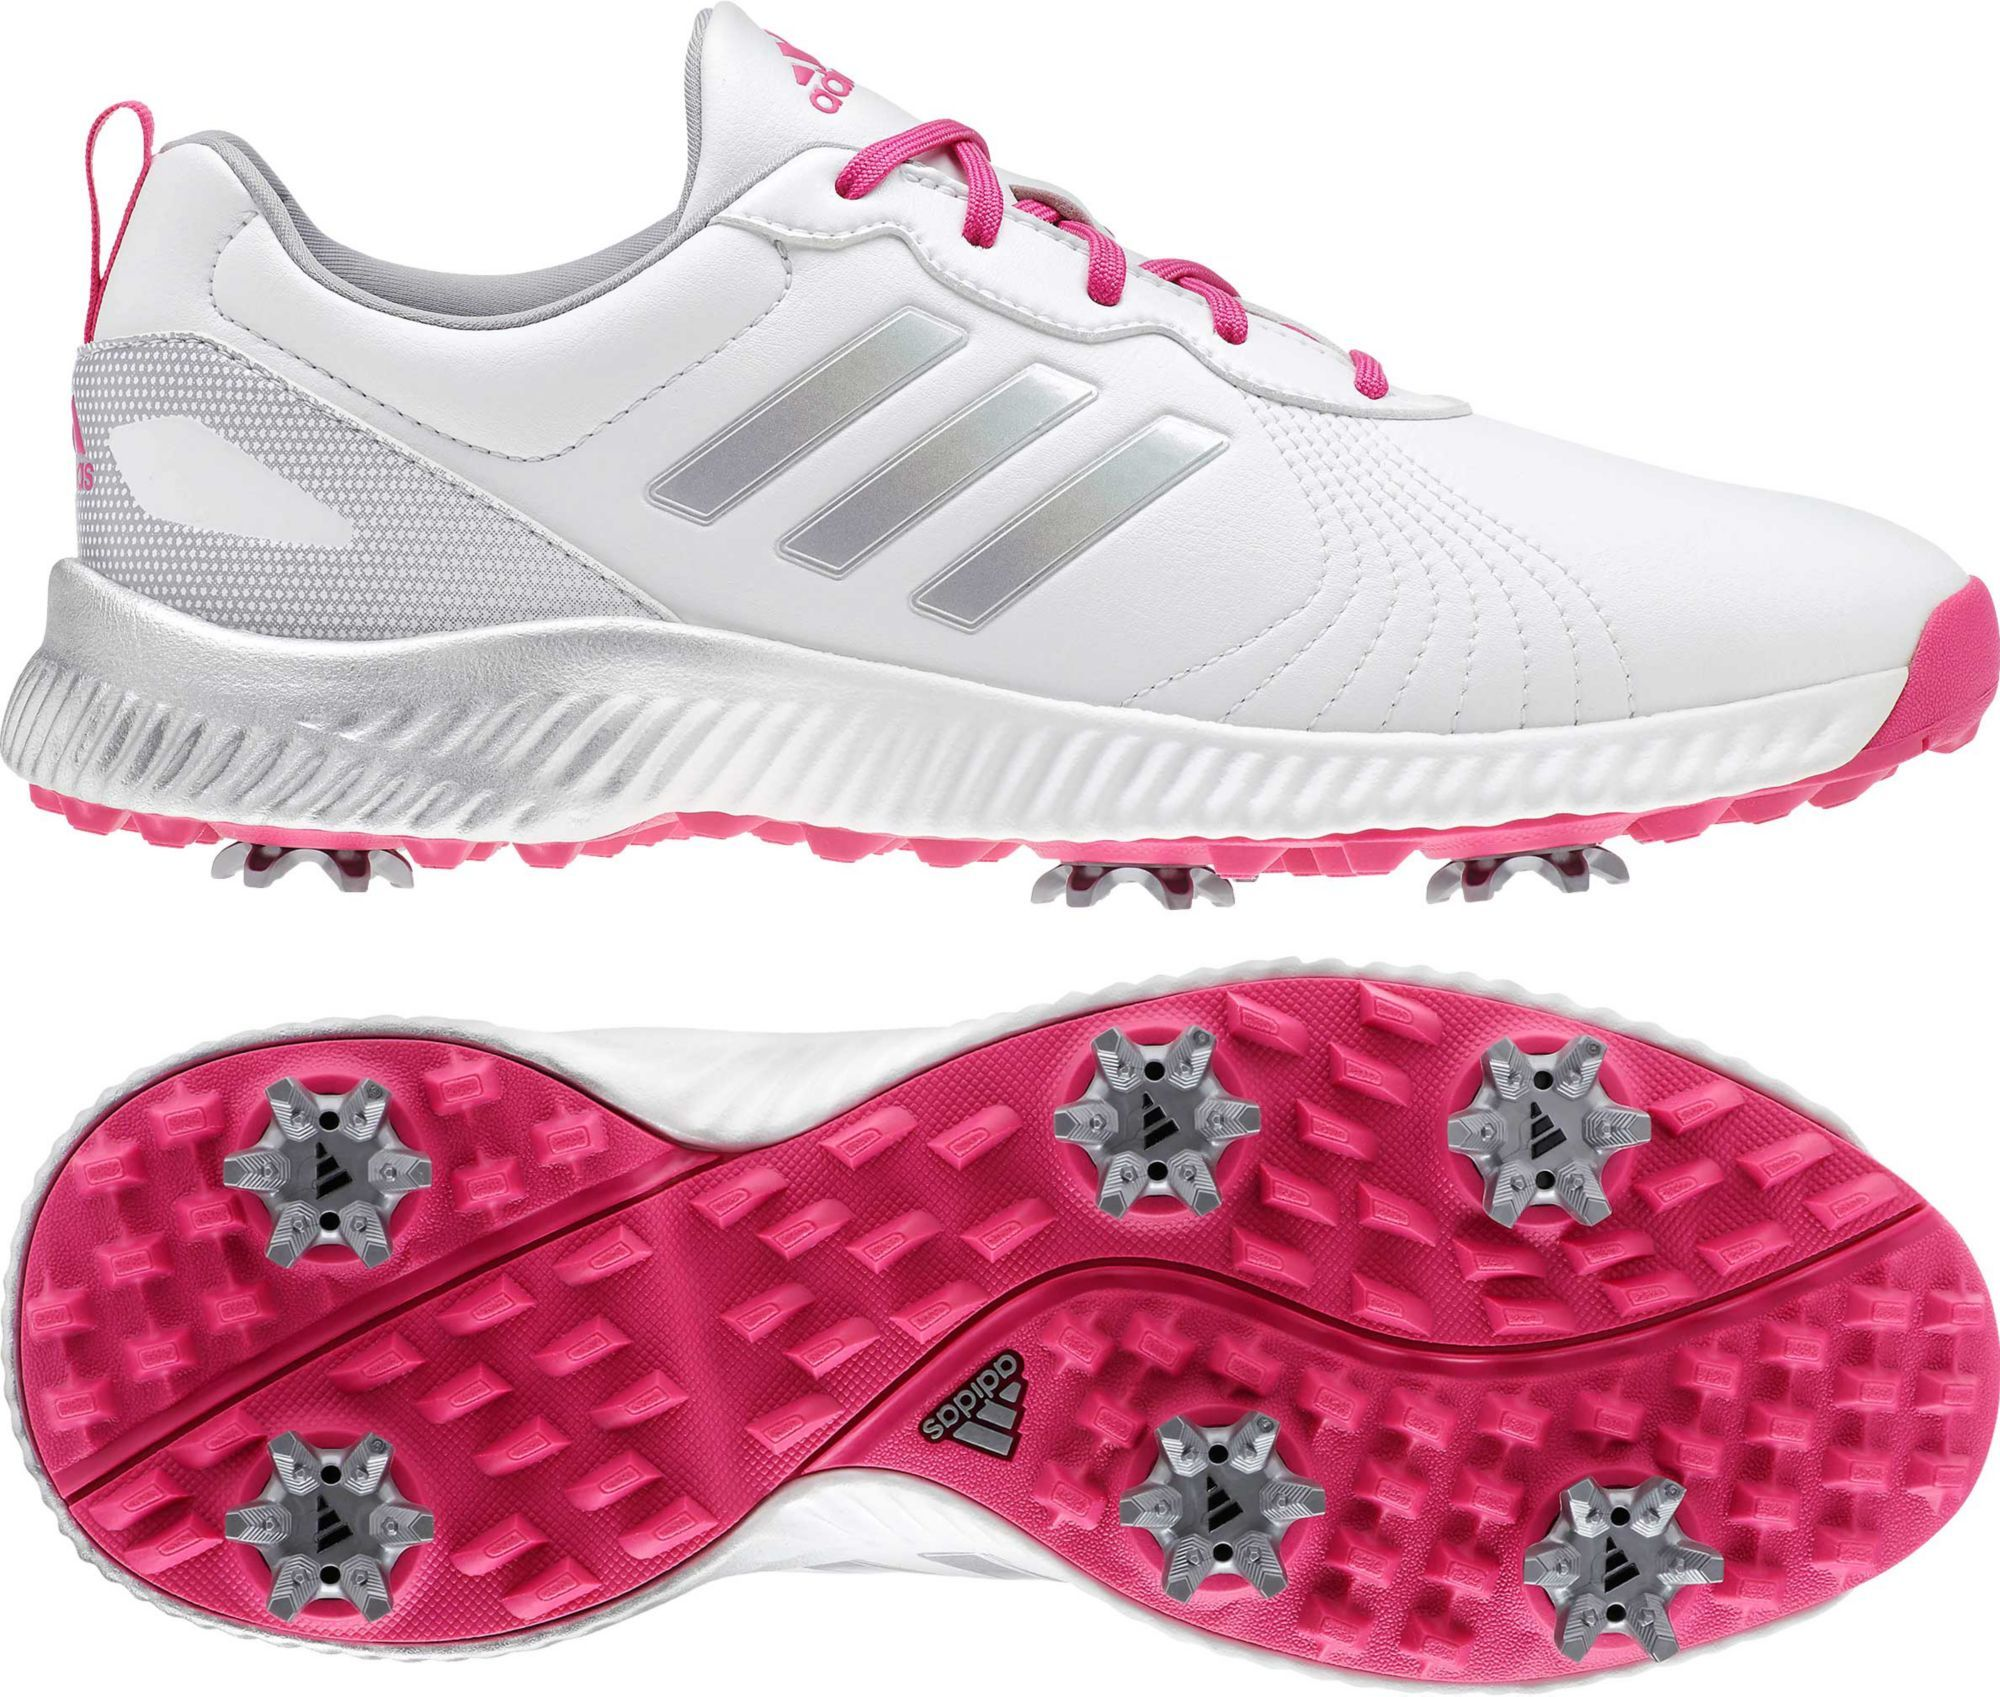 f408cc7fe65d5 adidas Women s Response Bounce Golf Shoes